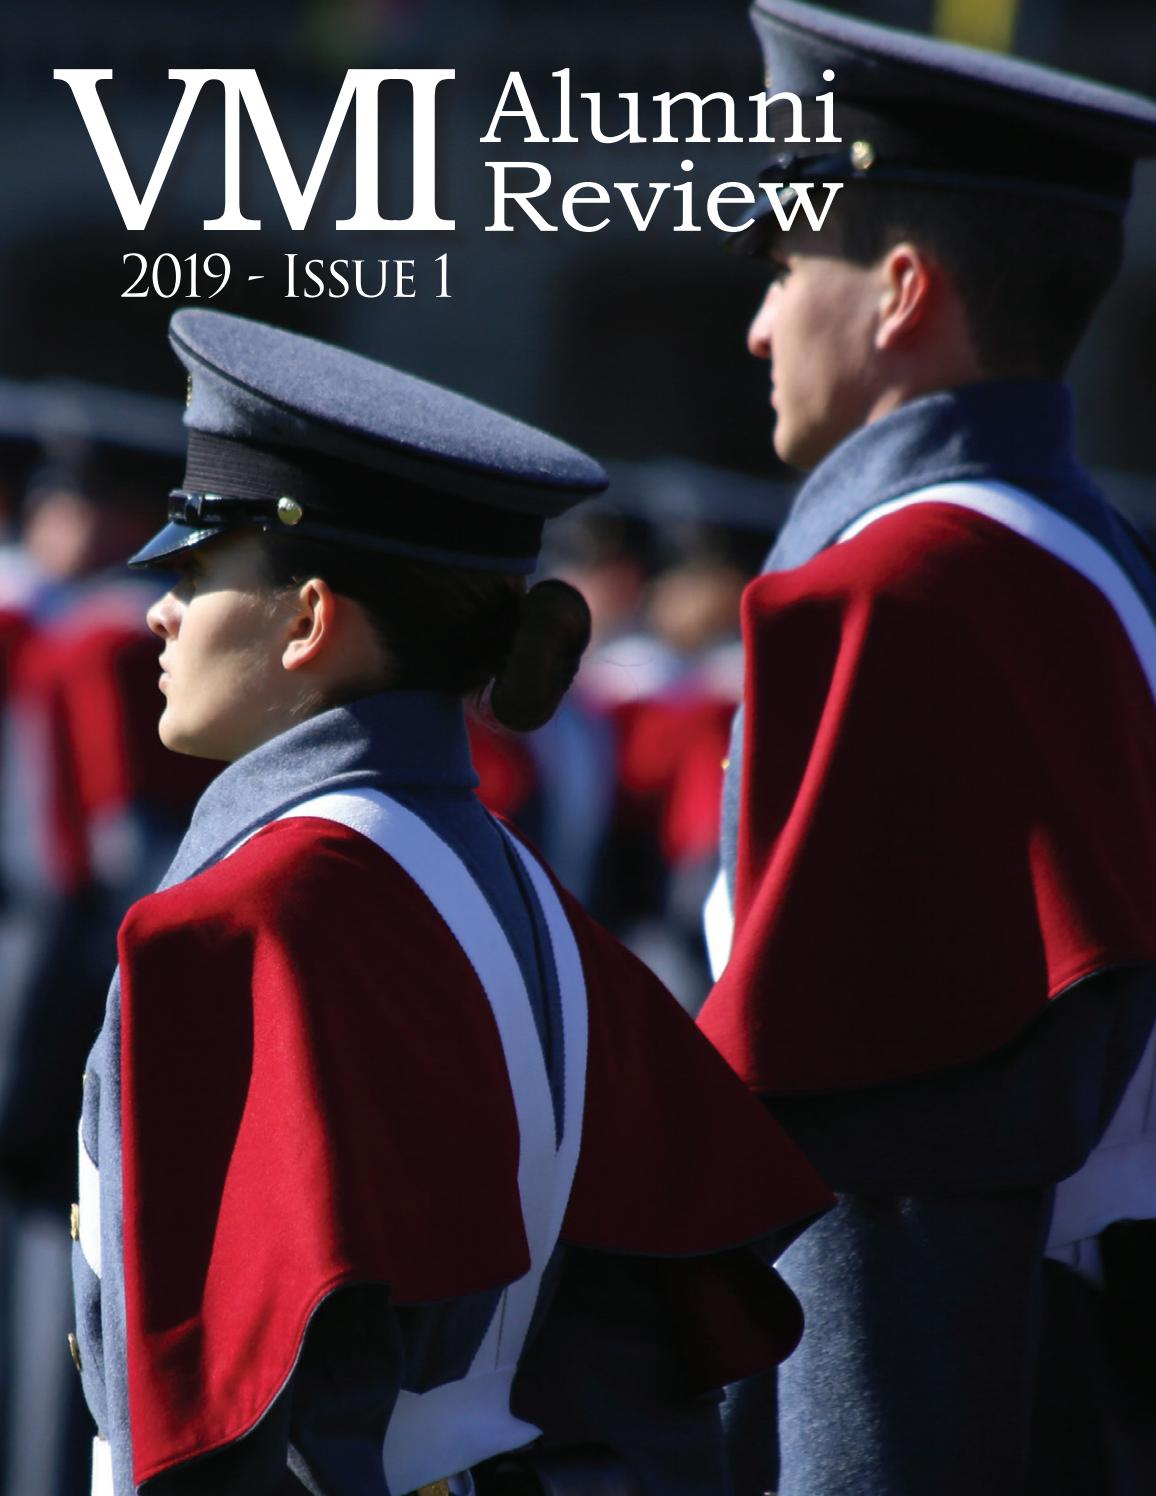 e2f9a53c13 2019-Issue 1 Alumni Review by VMI Alumni Agencies - issuu